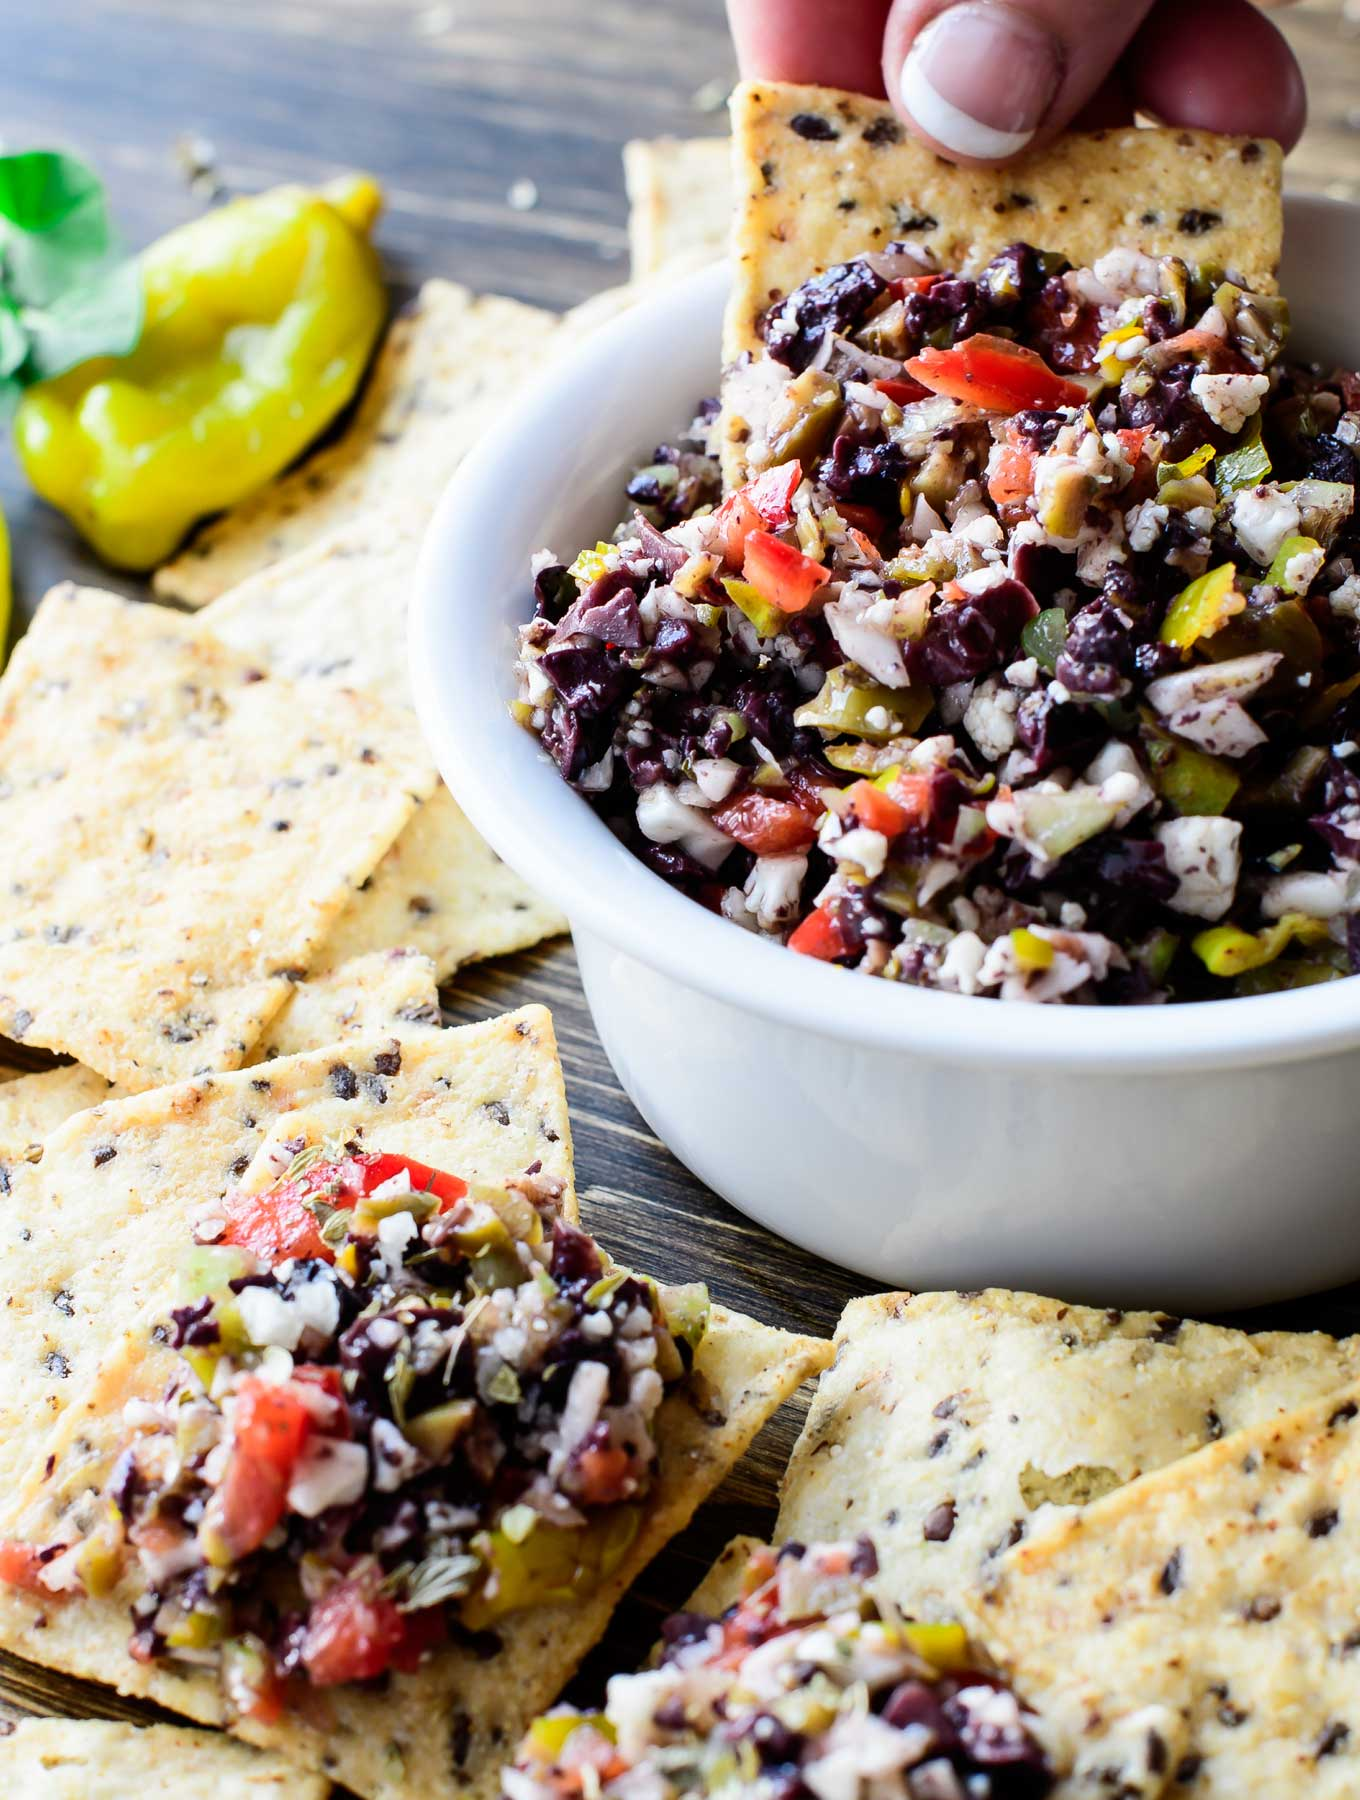 Olive Salsa with crackers